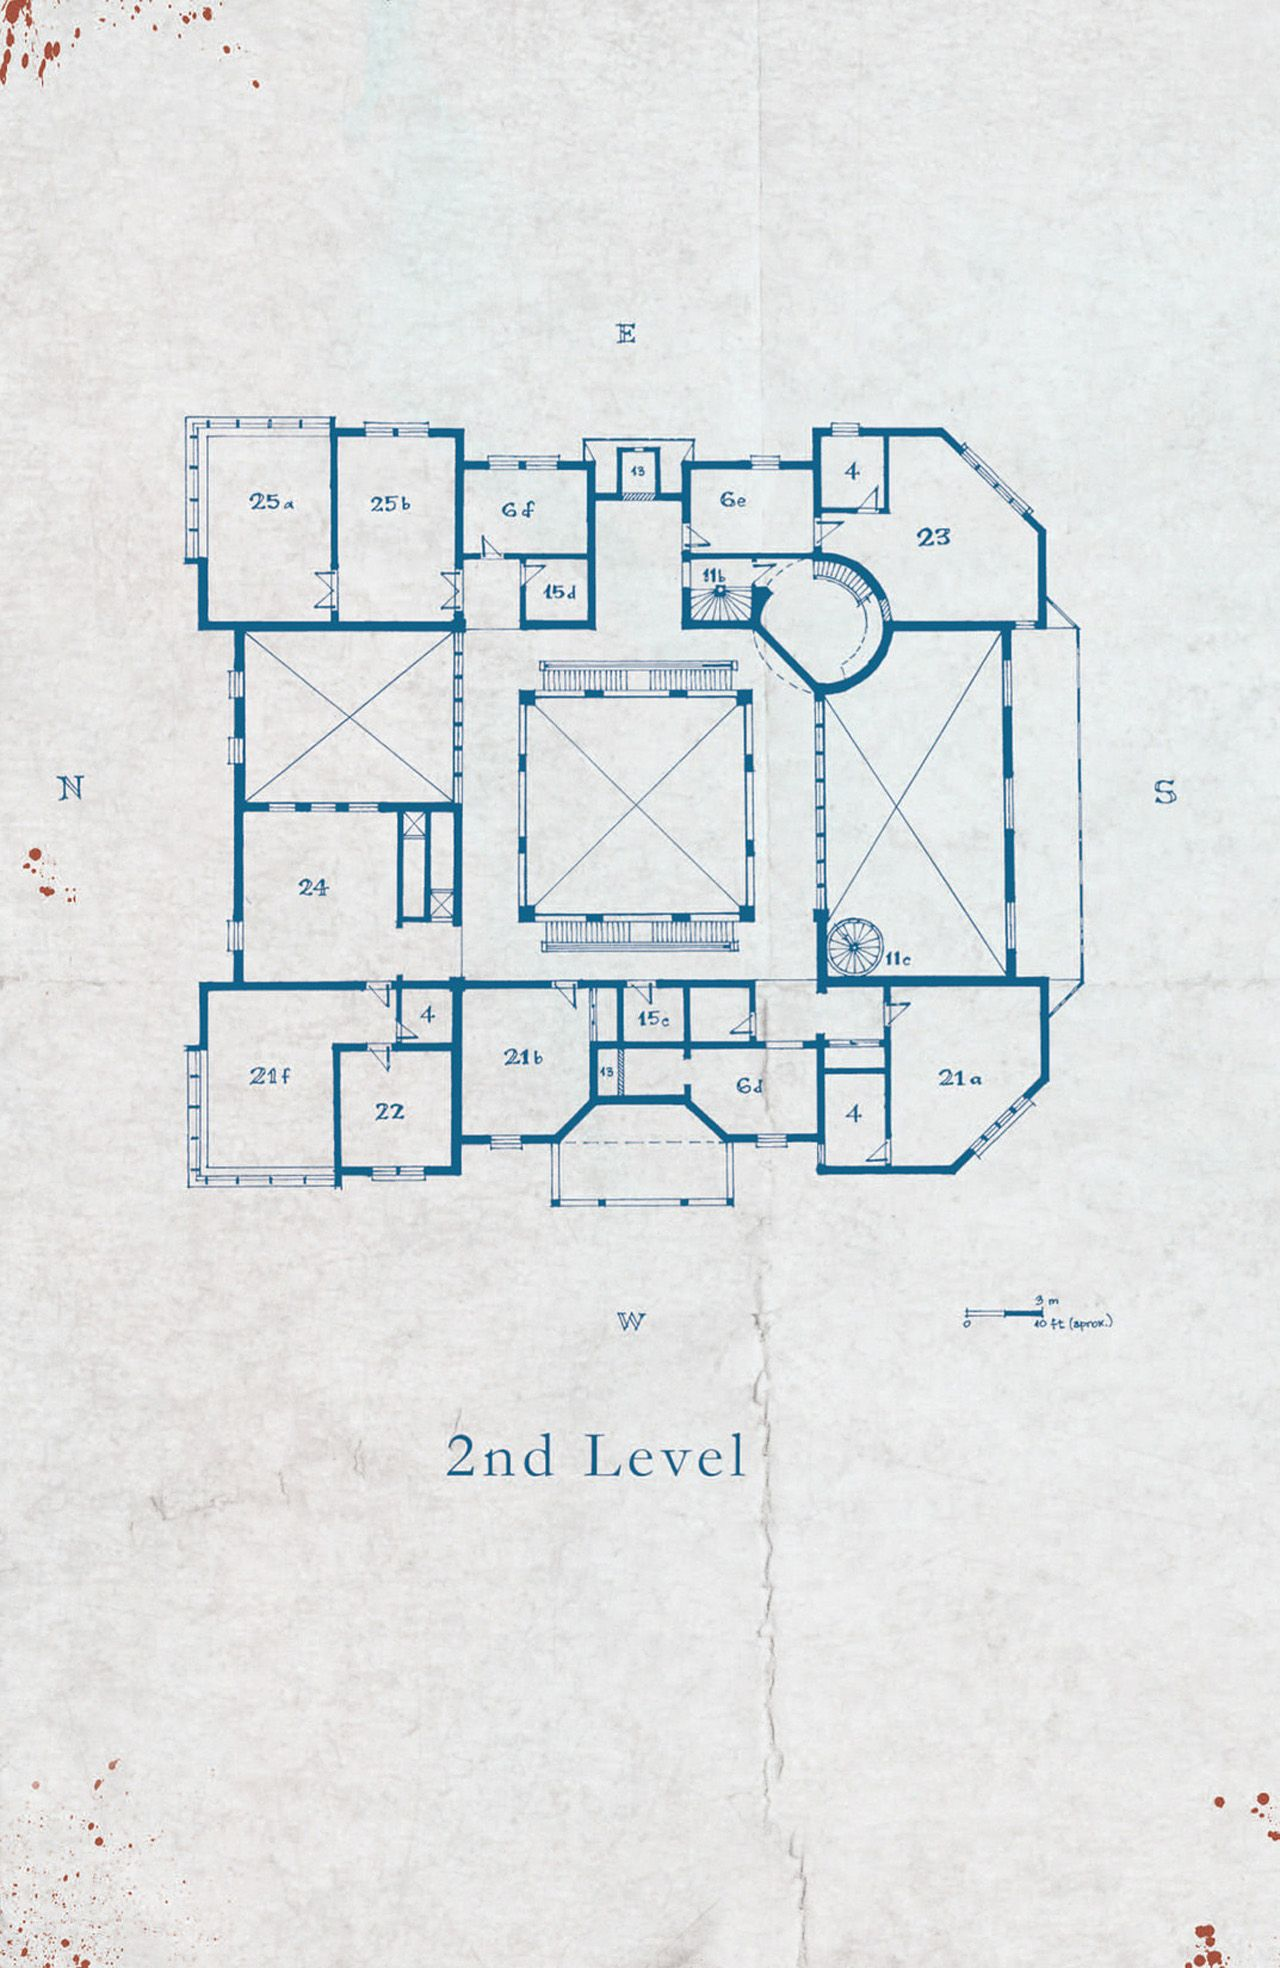 Keyhouse Manor Blueprints 03 Second Level Comics